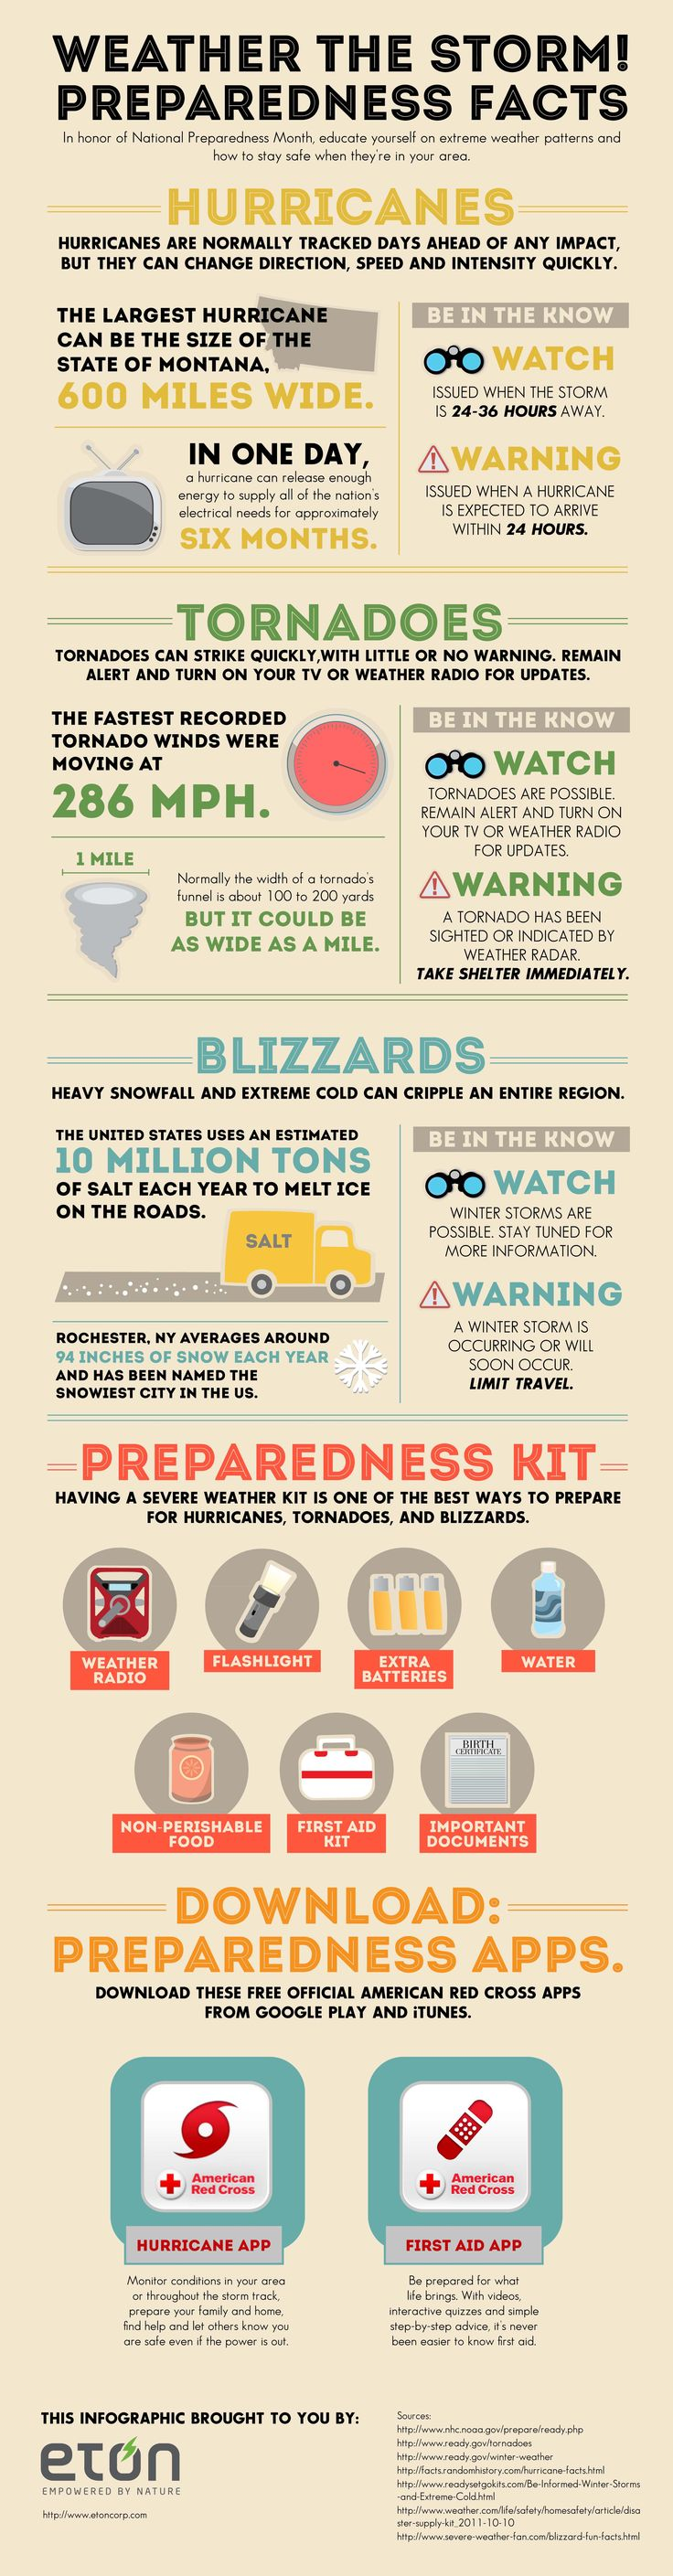 Preparedness Facts for Preparedness Month Infographic from Eton Corporation. Stay prepared with weather apps, must-have preparedness kit items, and weather watch tips.